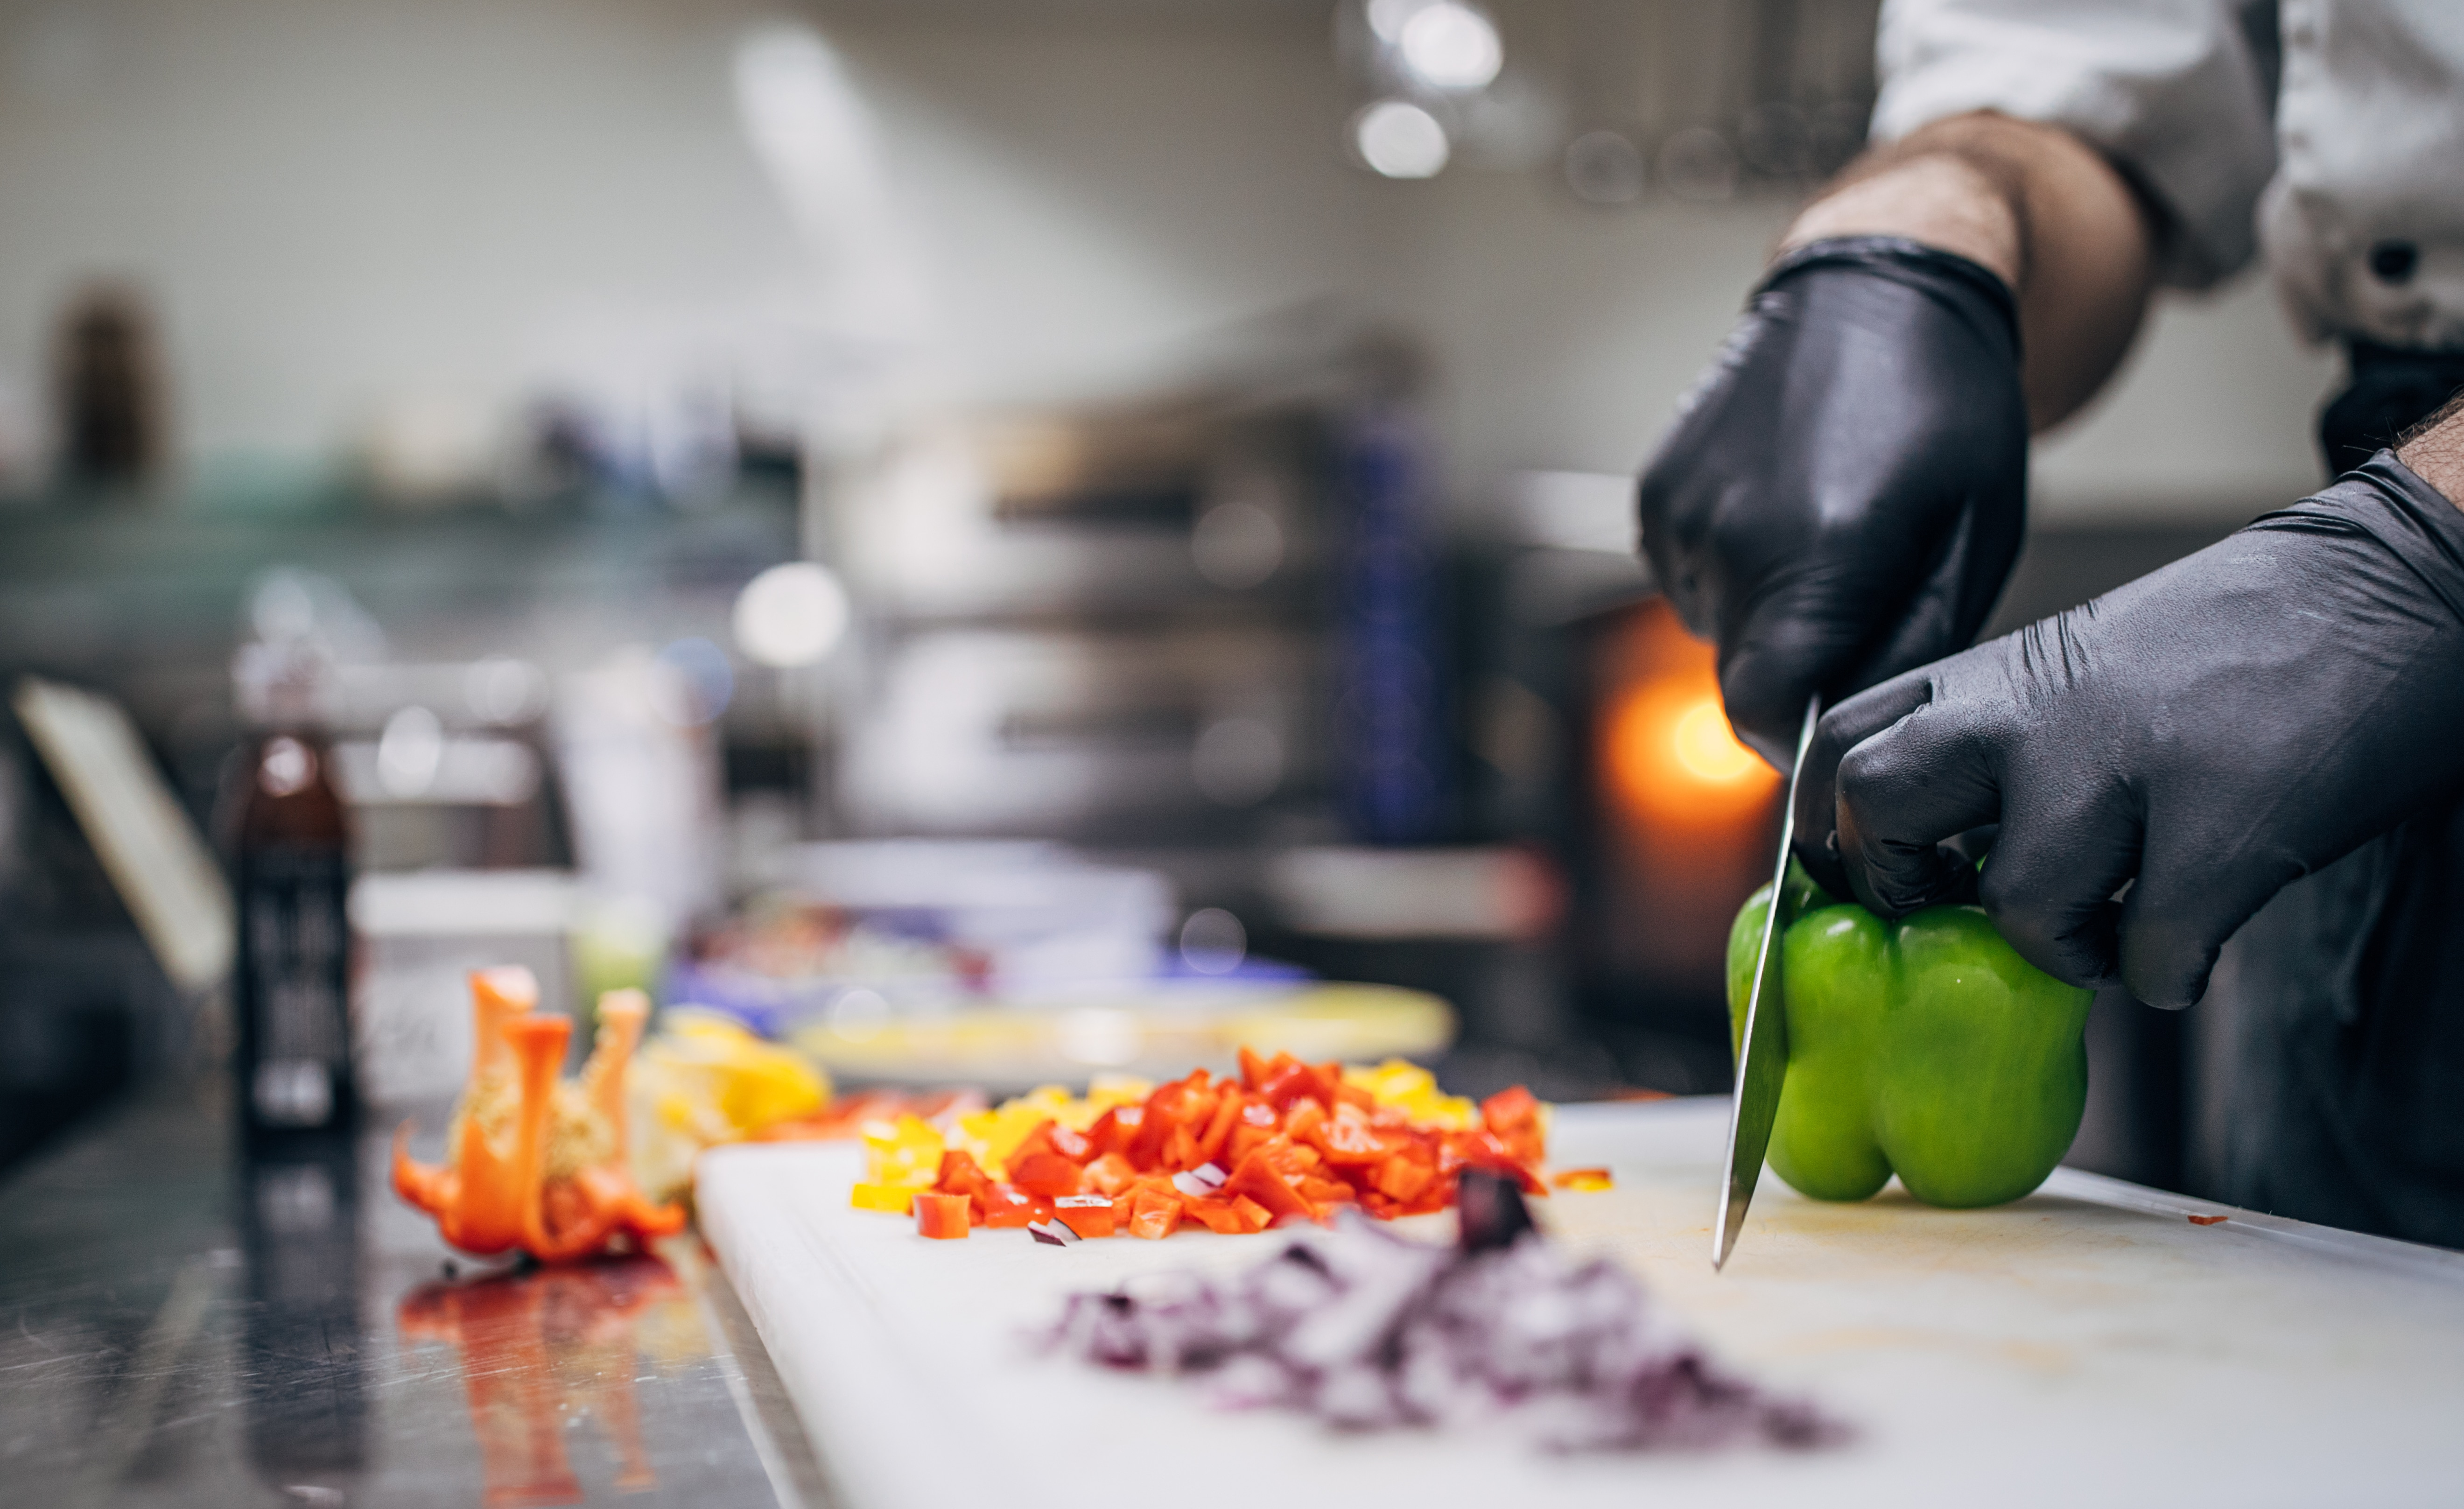 Cooking in a restaurant